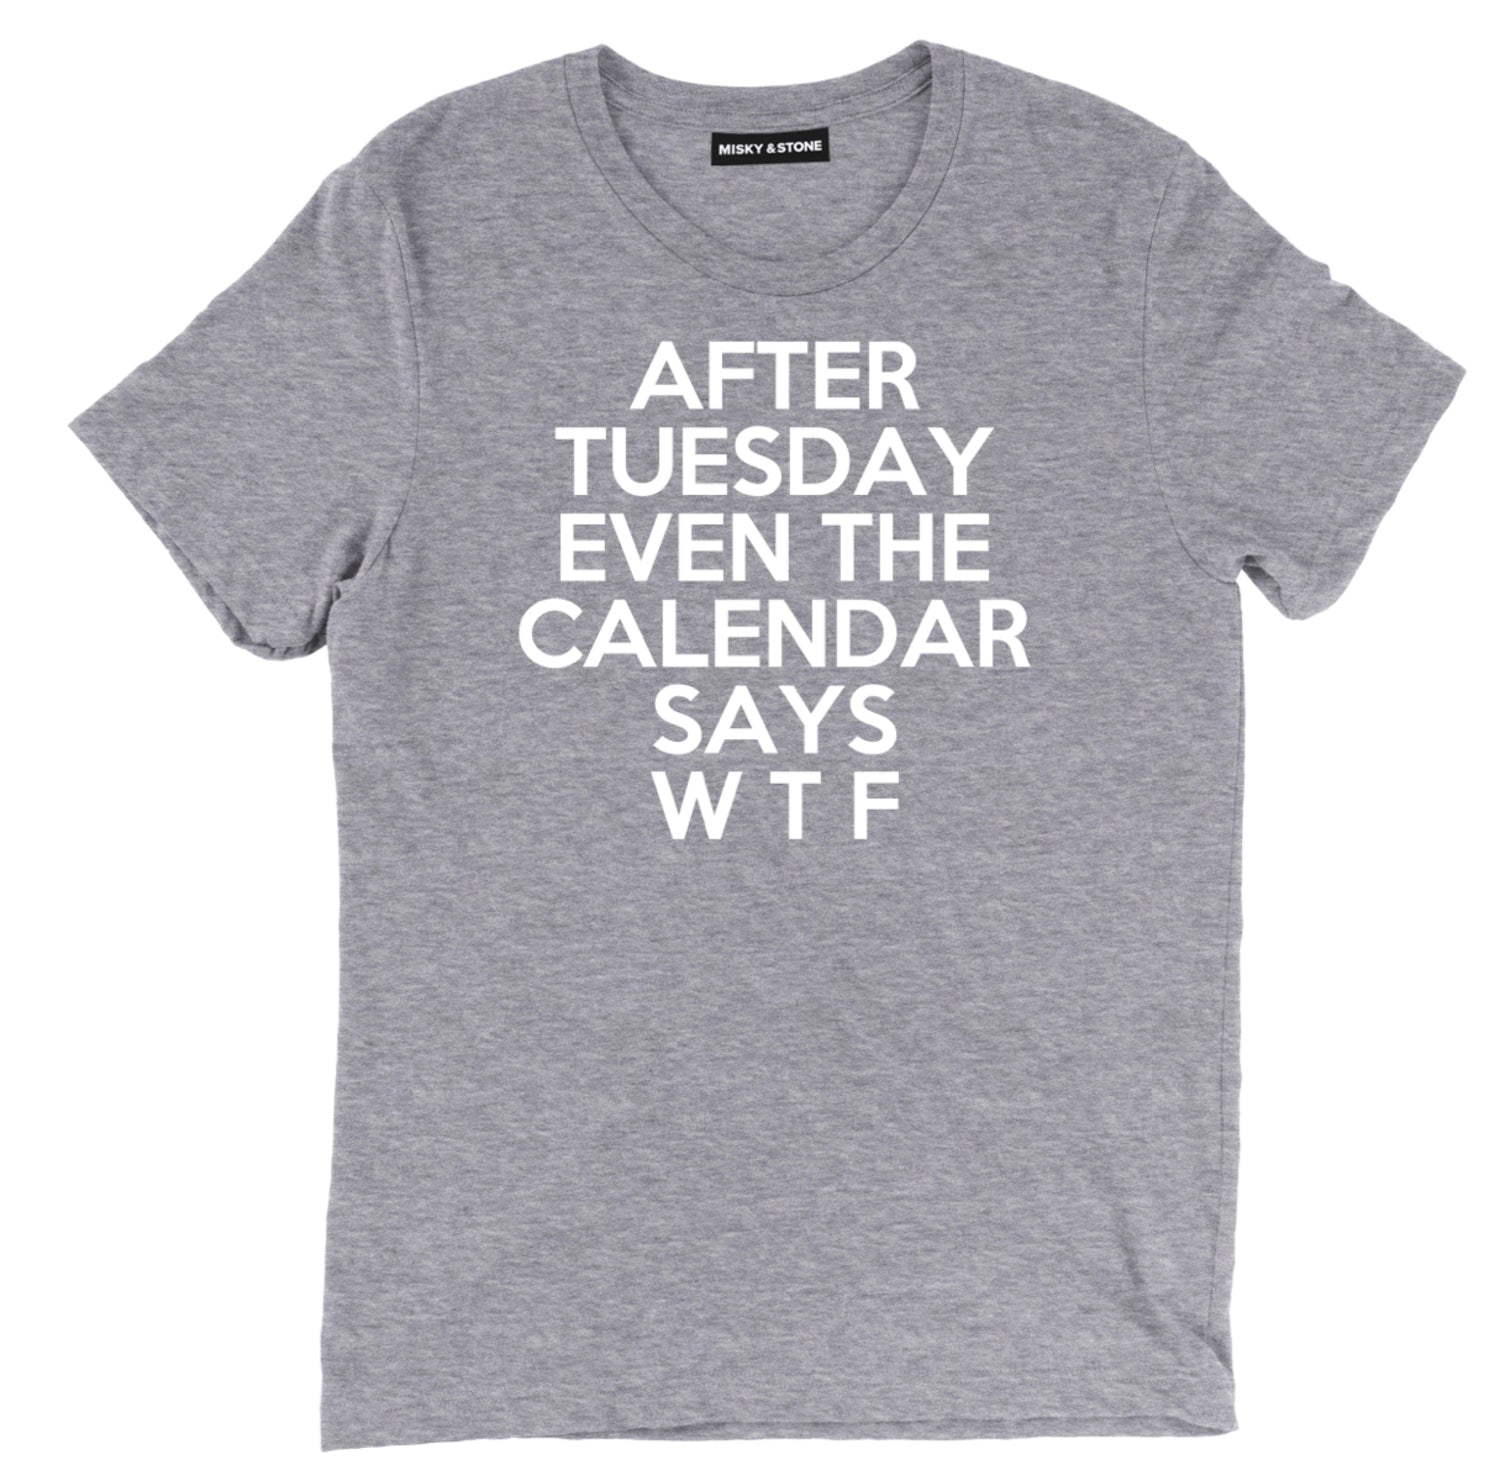 after tuesday even the calendar says wtf tee, funny days of  the week sarcastic t shirts, sarcastic shirts, calendar sarcastic tee shirts, after Tuesday sarcastic tees, sarcastic t shirt sayings, sarcastic t shirts quotes, funny sarcastic t shirts,